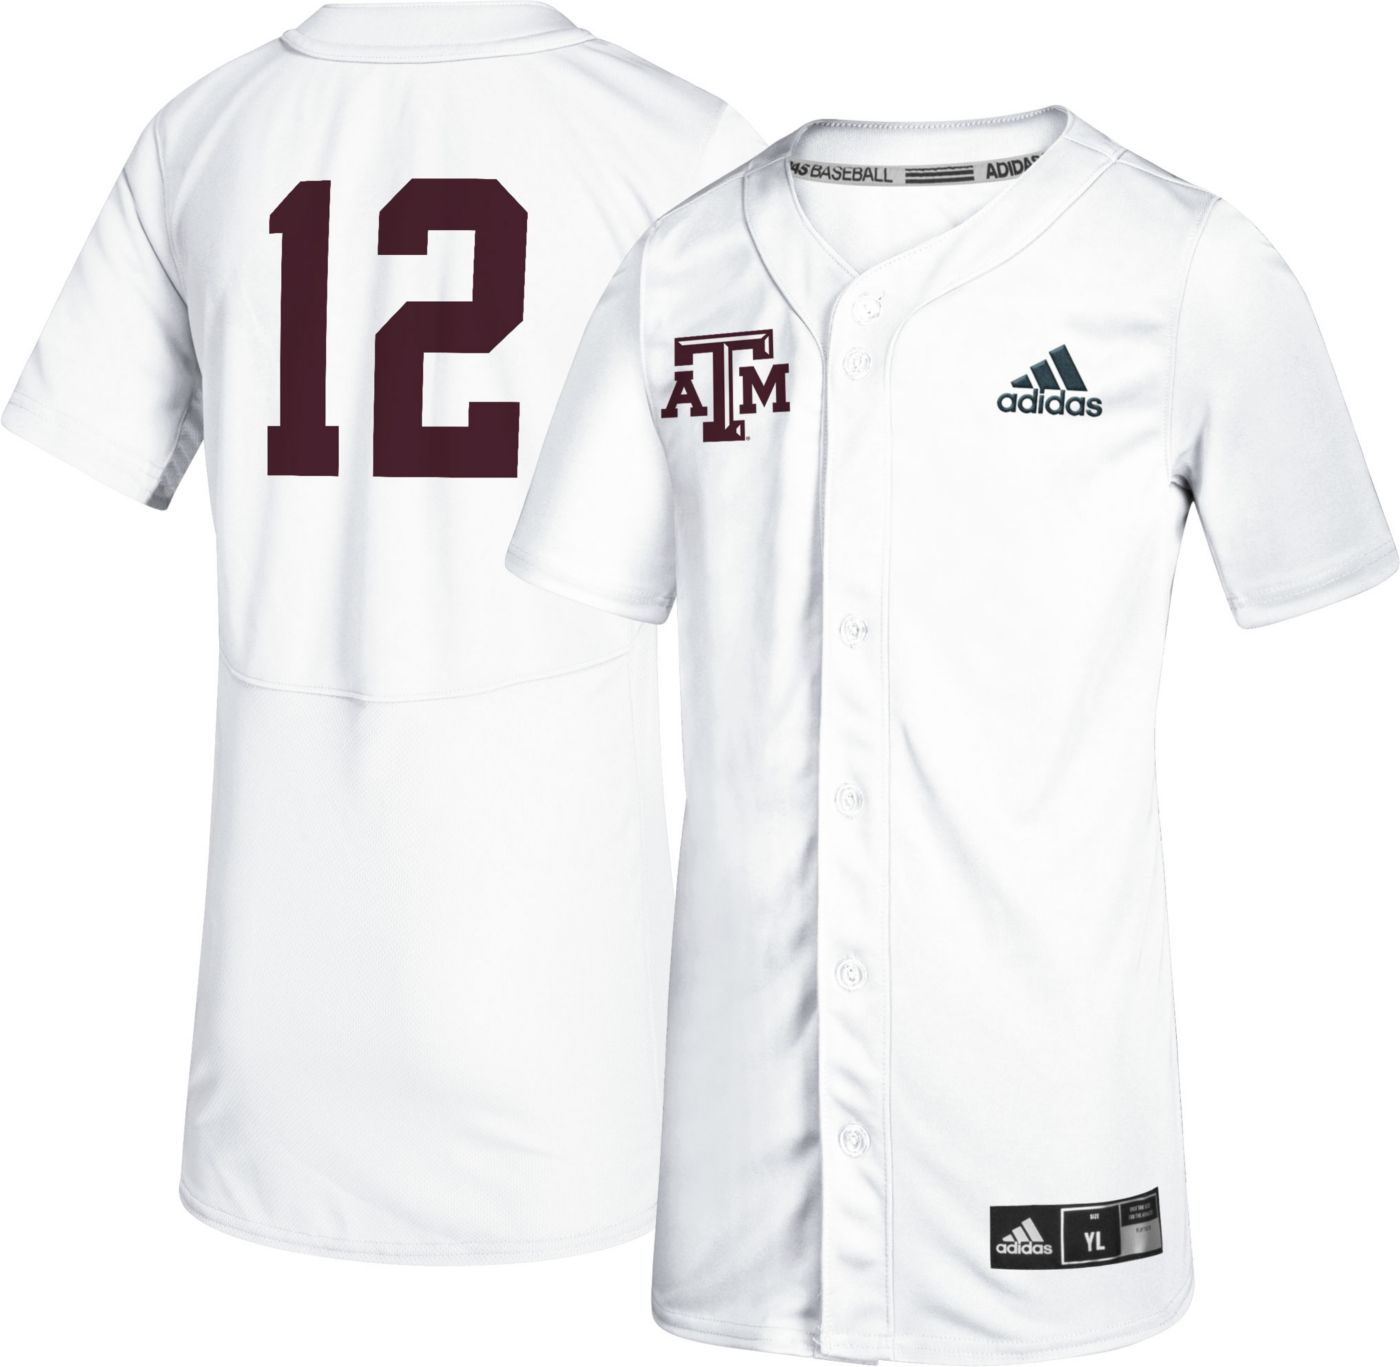 adidas Youth Texas A&M Aggies #12 Full-Button Replica Baseball White Jersey